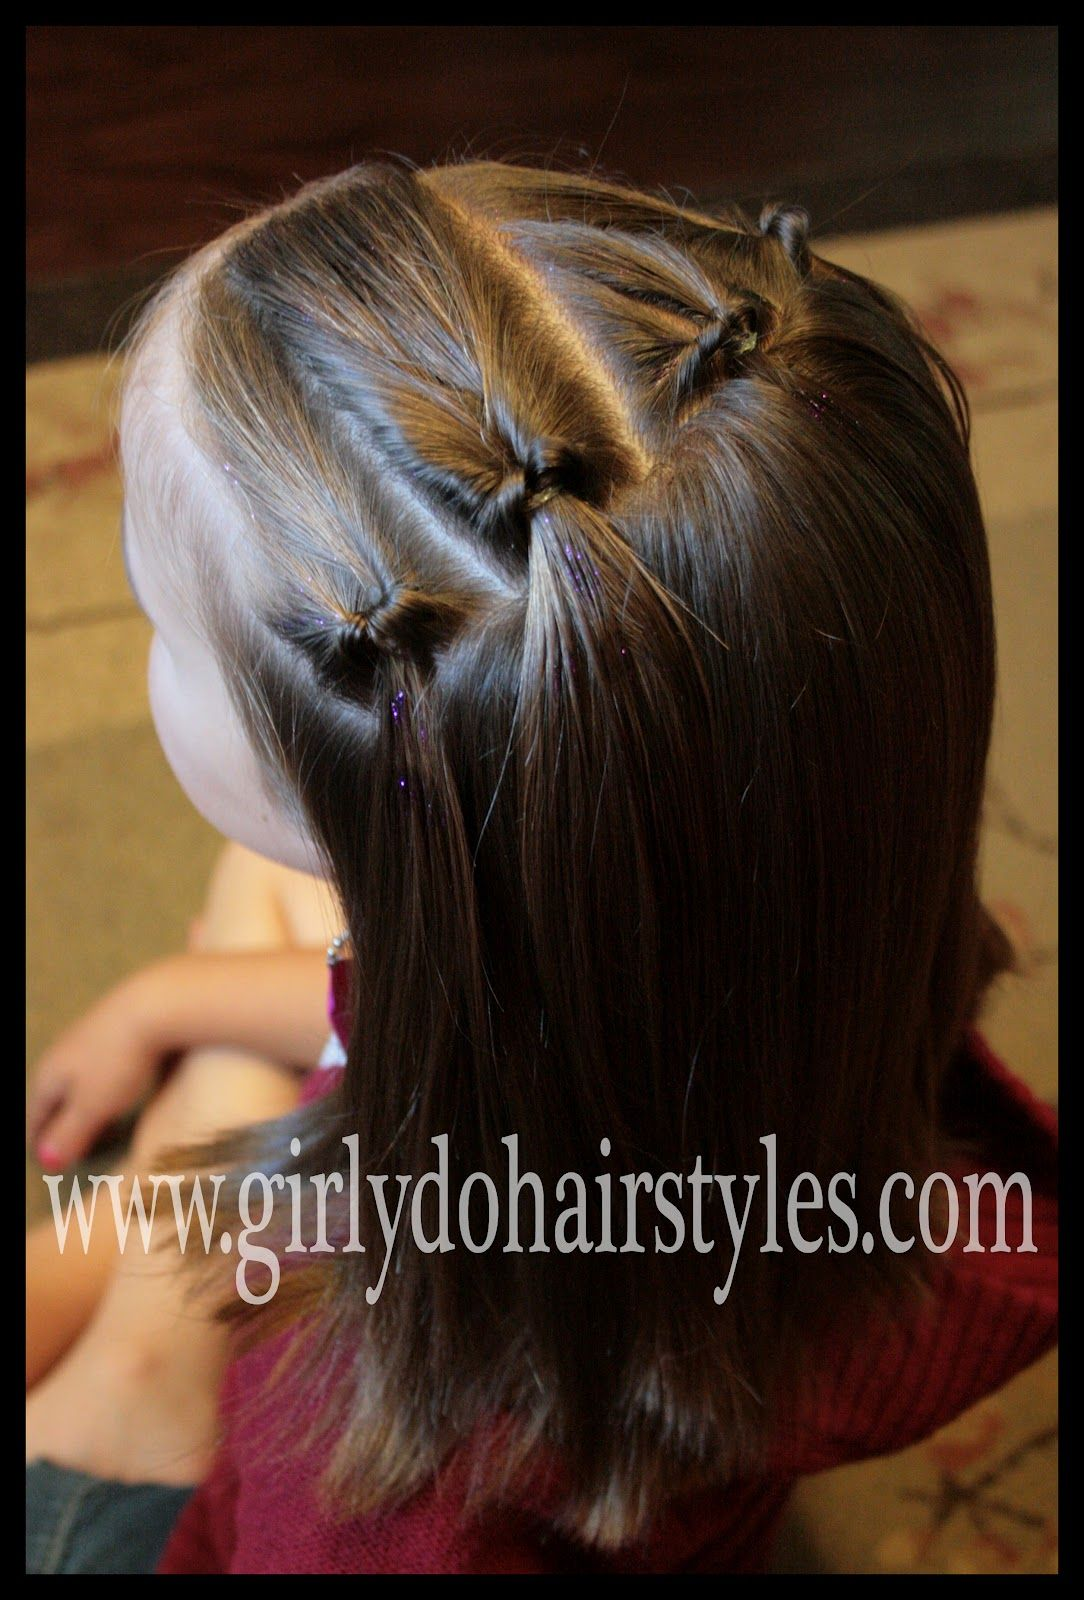 Girly Do Hairstyles By Jenn June hairstyles for little